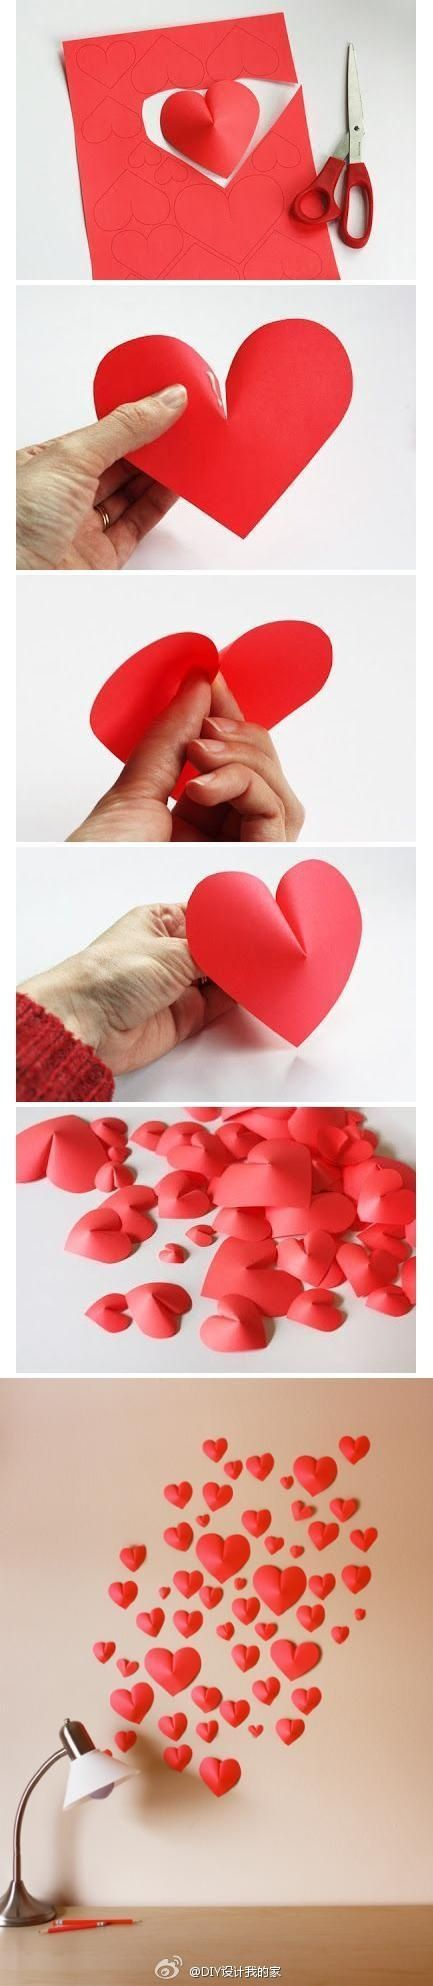 DIY Make a 3D Paper Heart for cute decorations